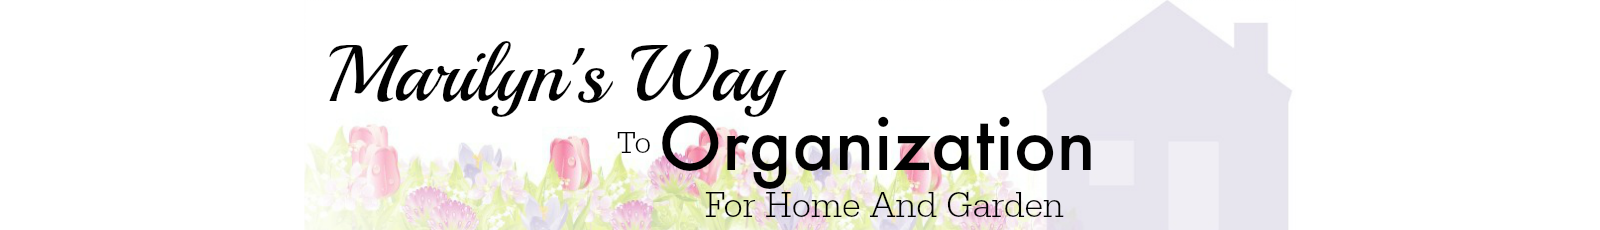 mwtoorganizationforhomeandgarden3